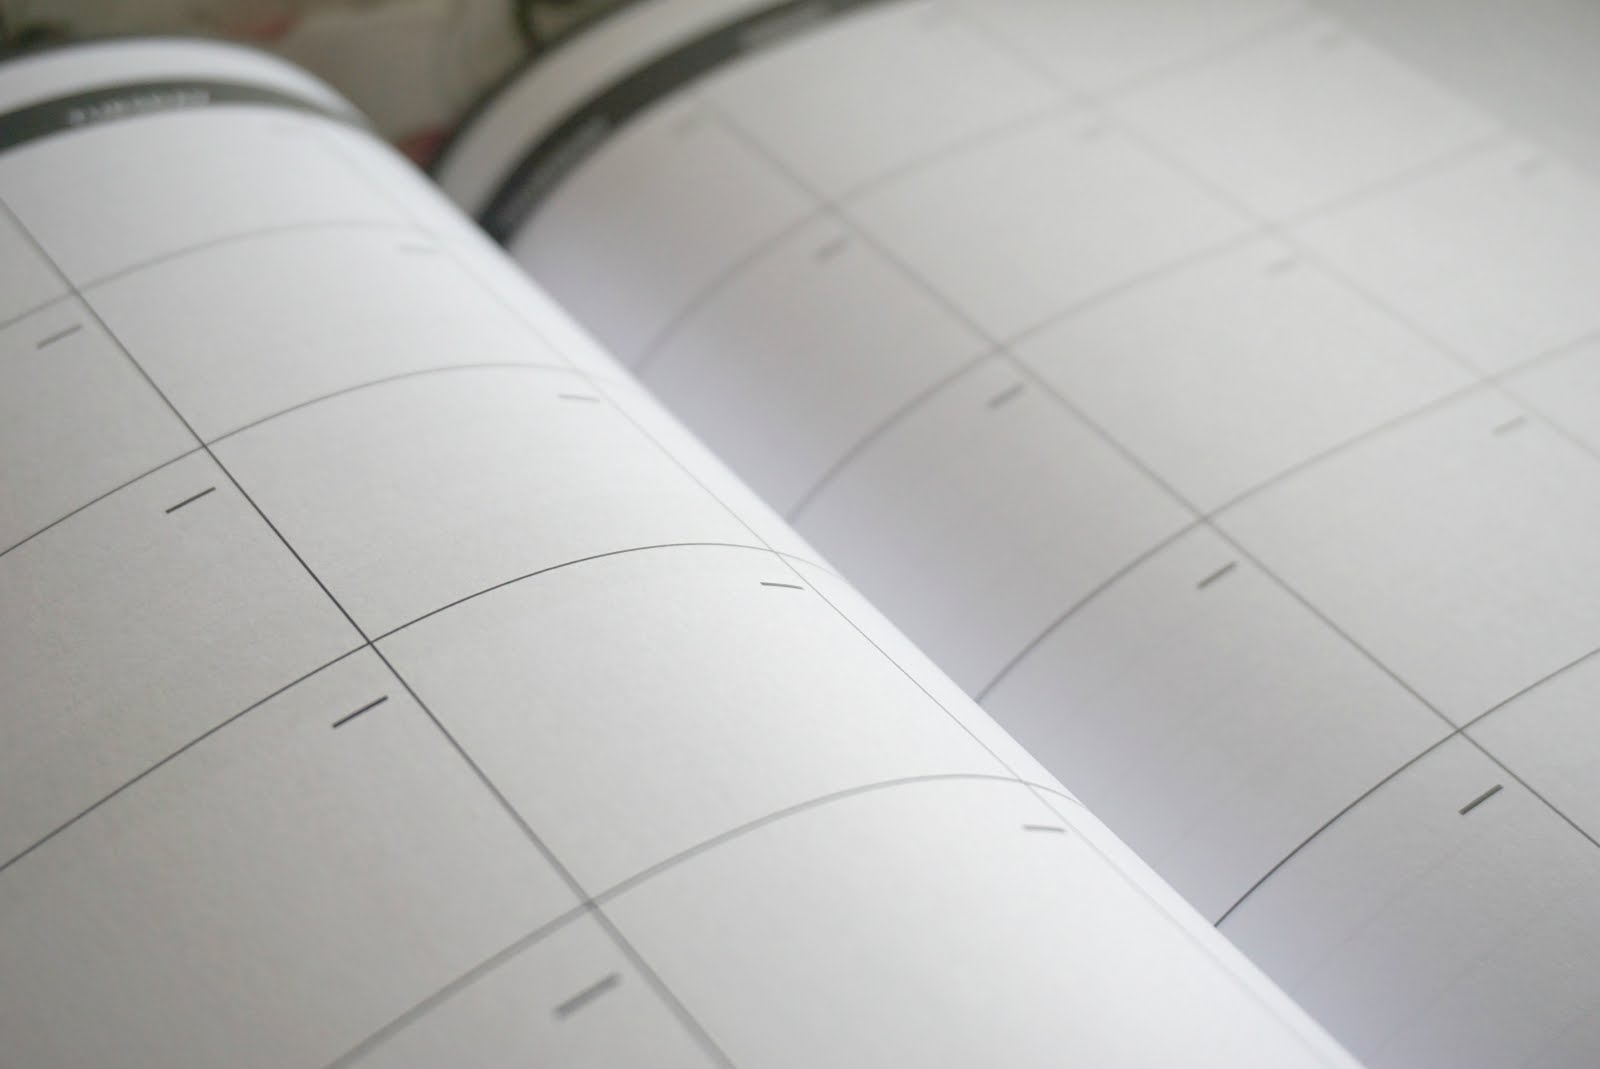 EPIC BLOG: One-Year Editorial Planner